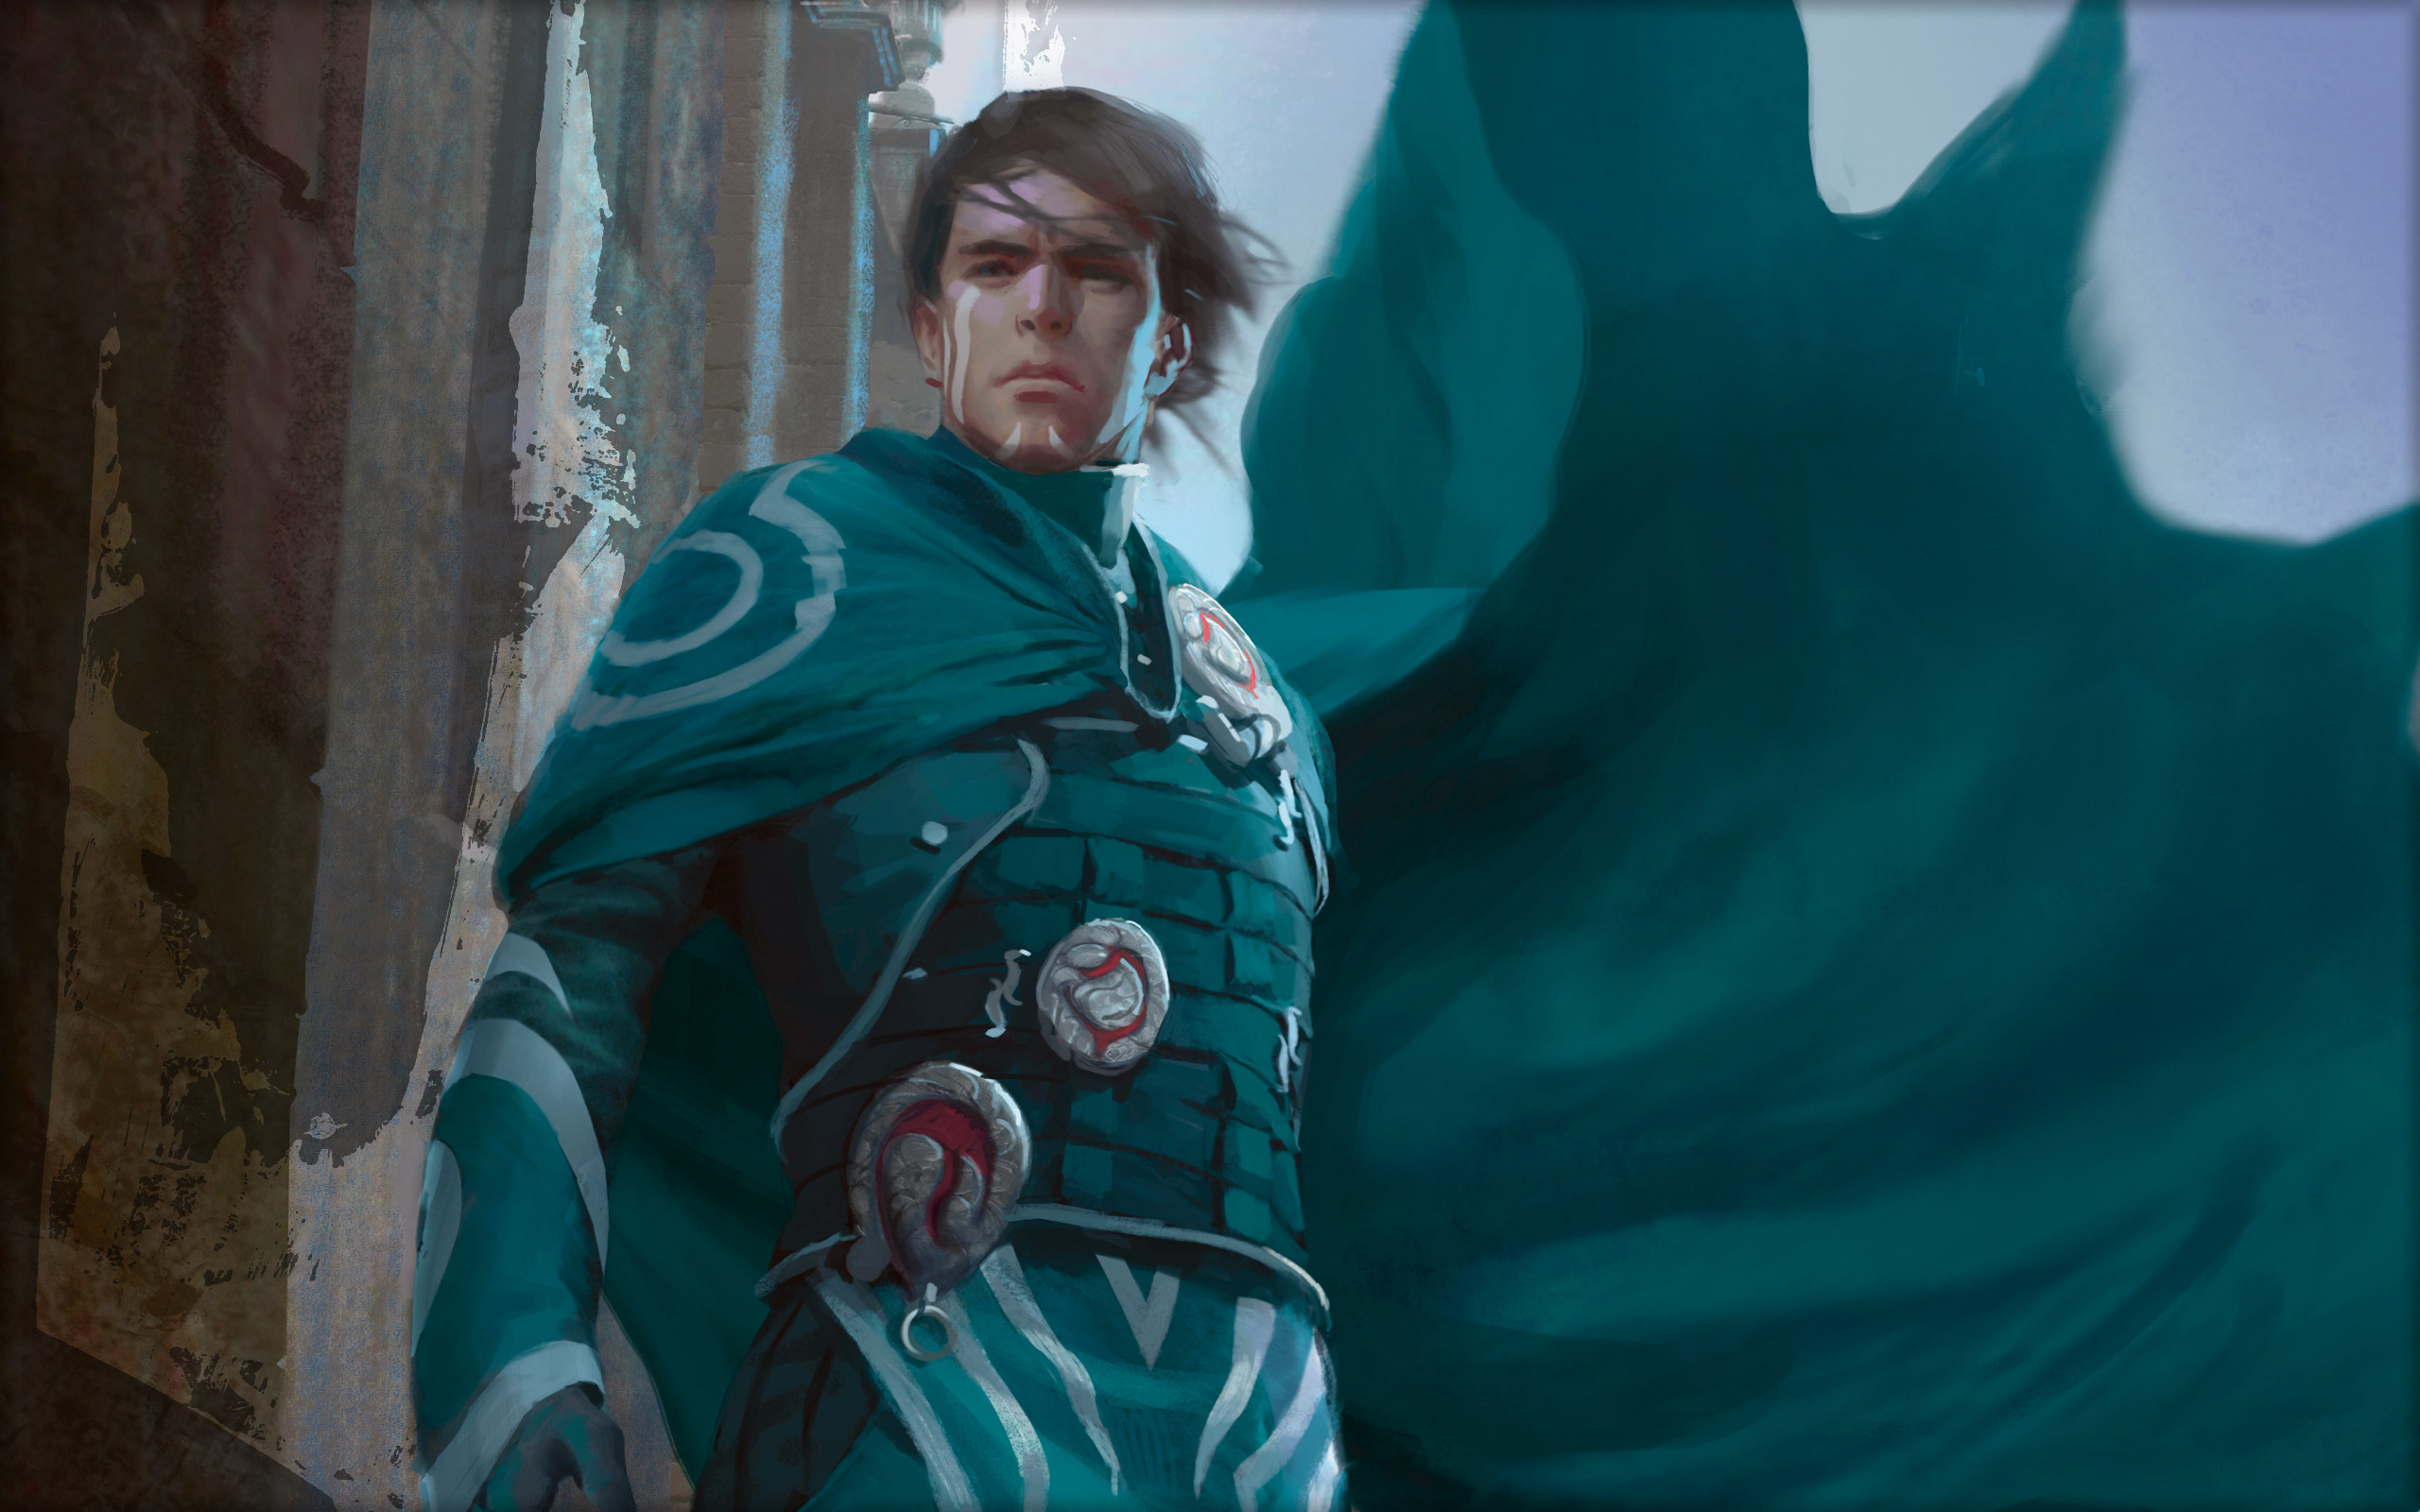 Magic The Gathering Hd Wallpaper Background Image 2560x1600